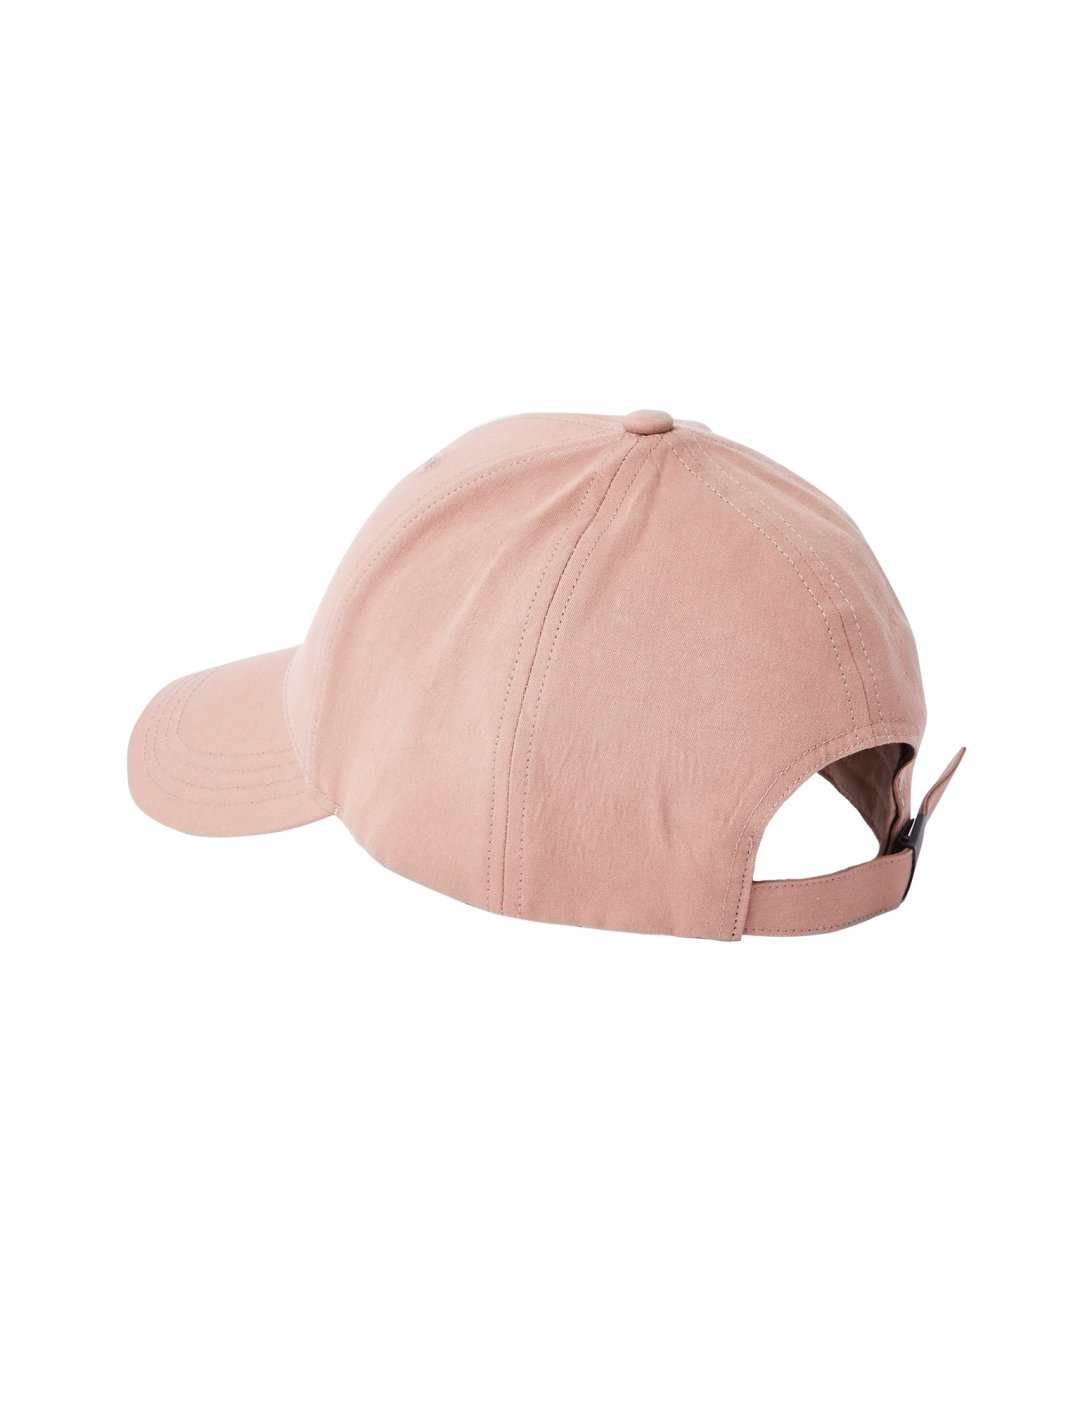 "River Island Baseball Cap {""id"":16,""product_section_id"":1,""name"":""Accessories"",""order"":15} River Island"